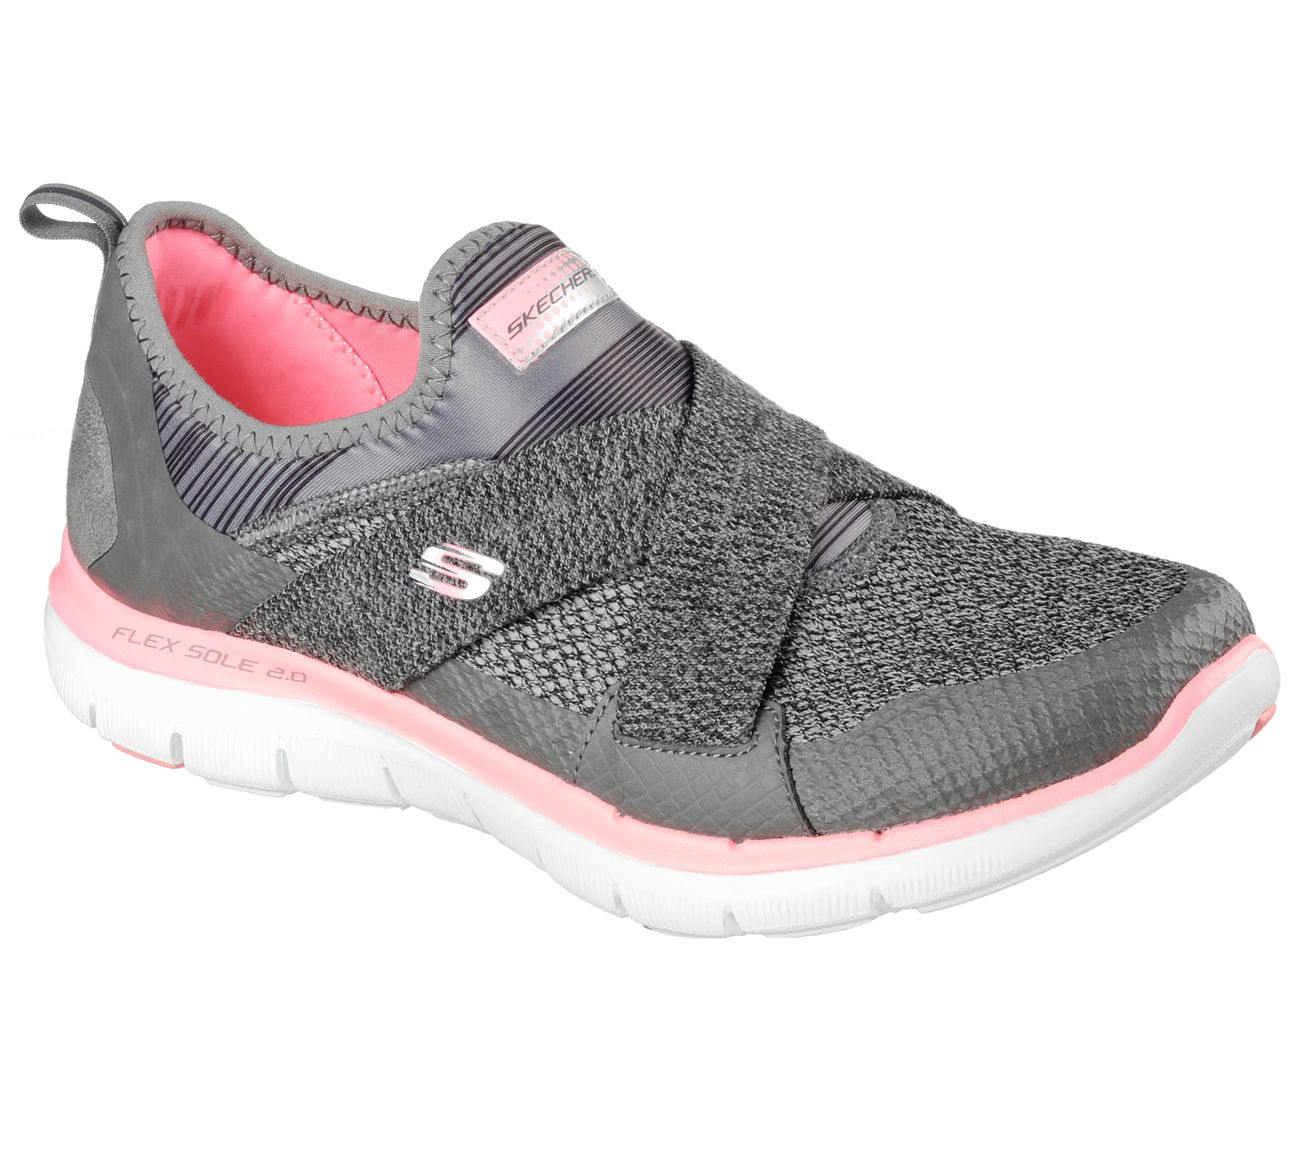 1e664eed37d Put some advanced sporty style and comfort on your feet with the SKECHERS  Flex Appeal 2.0 - New Image shoe. Soft mesh fabric and synthetic upper in a  slip ...